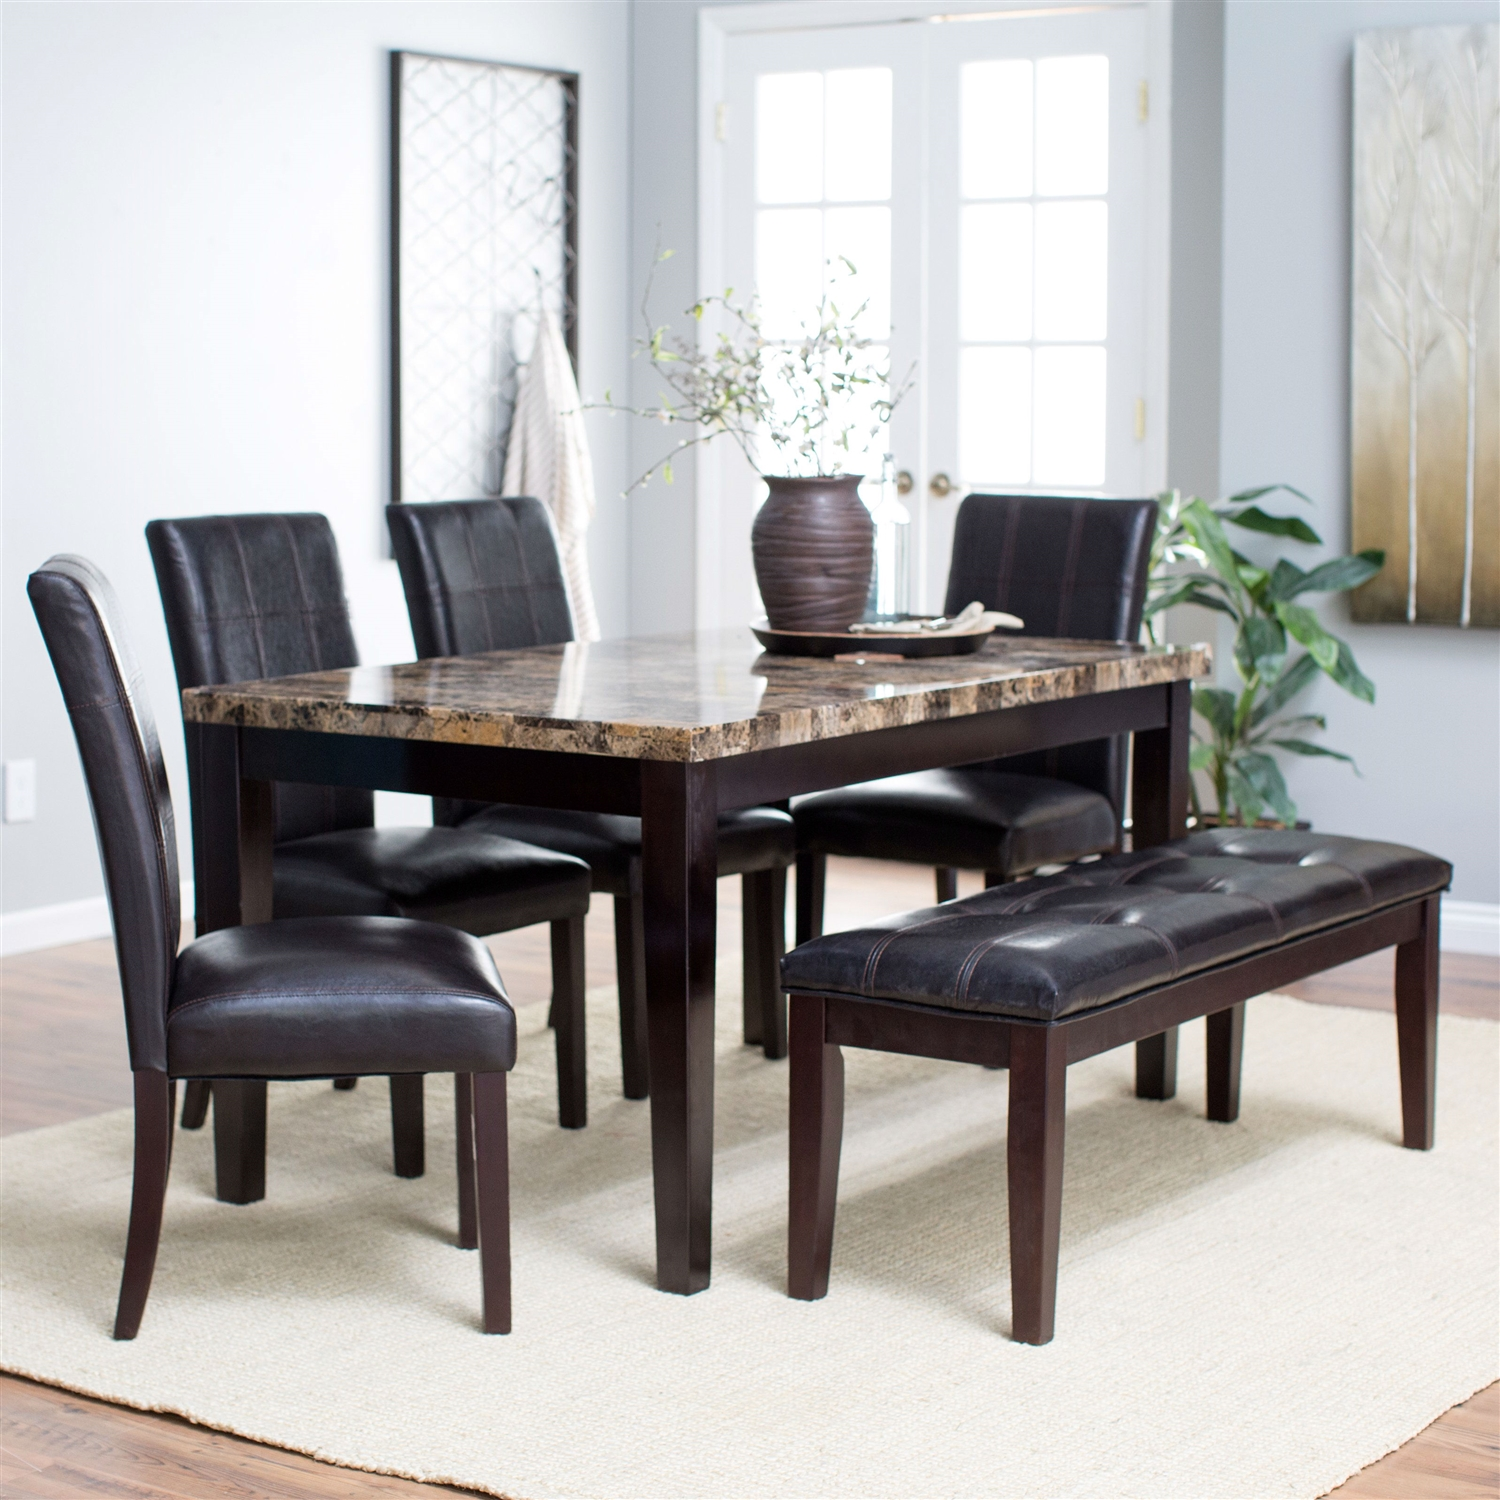 6 Piece Dining Set With Faux Marble Top